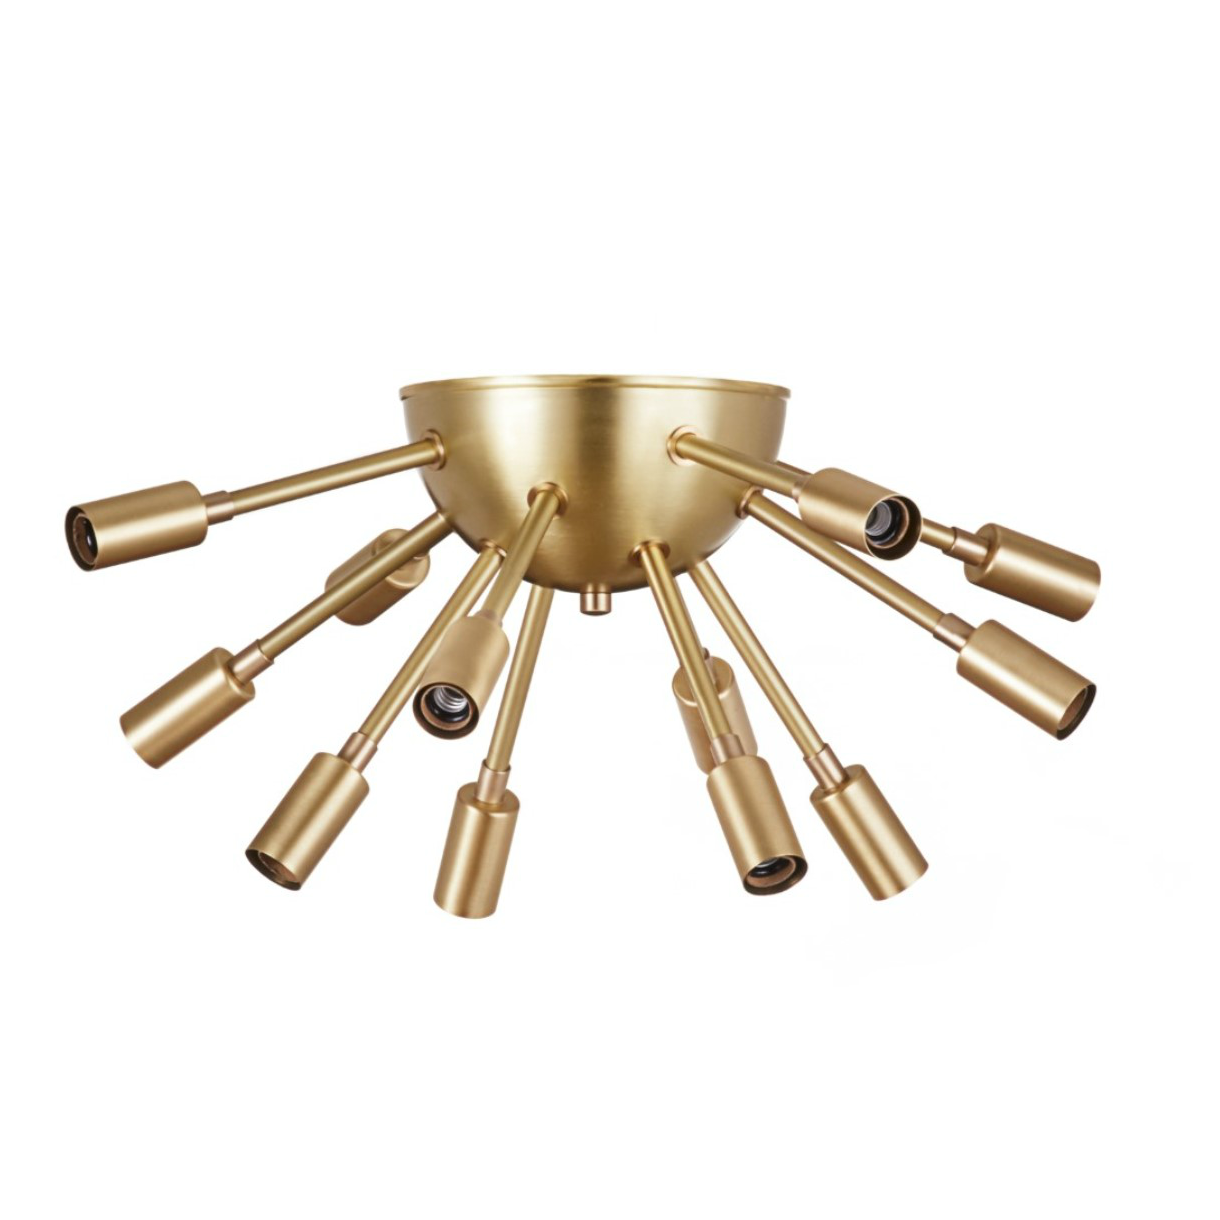 eclectic lighting. Brass Flushmount Sputnik Light - We Love This Funky, Eclectic Lighting. It Would Make Lighting N